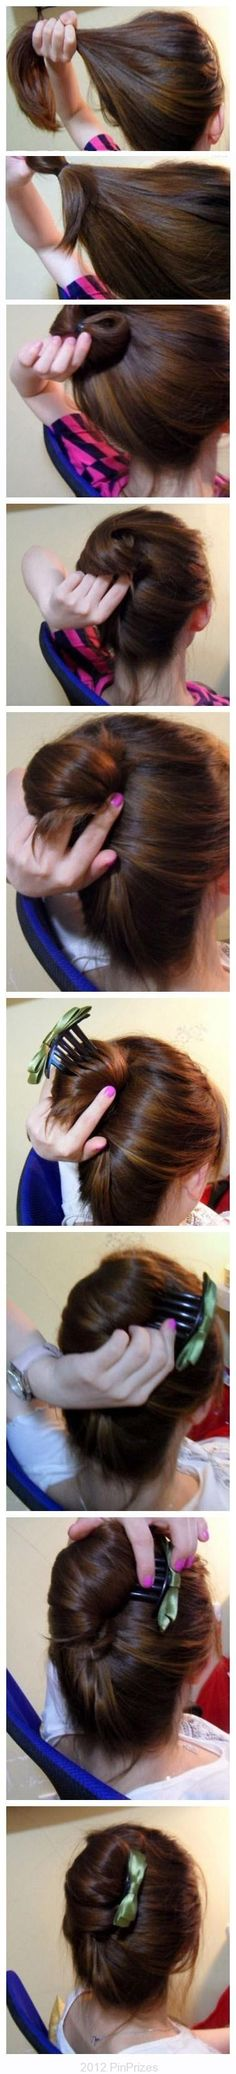 DIY Braided Hair: Hair tips and ideas: 20 Clever And Interesting Tutorials For Your Hairstyle